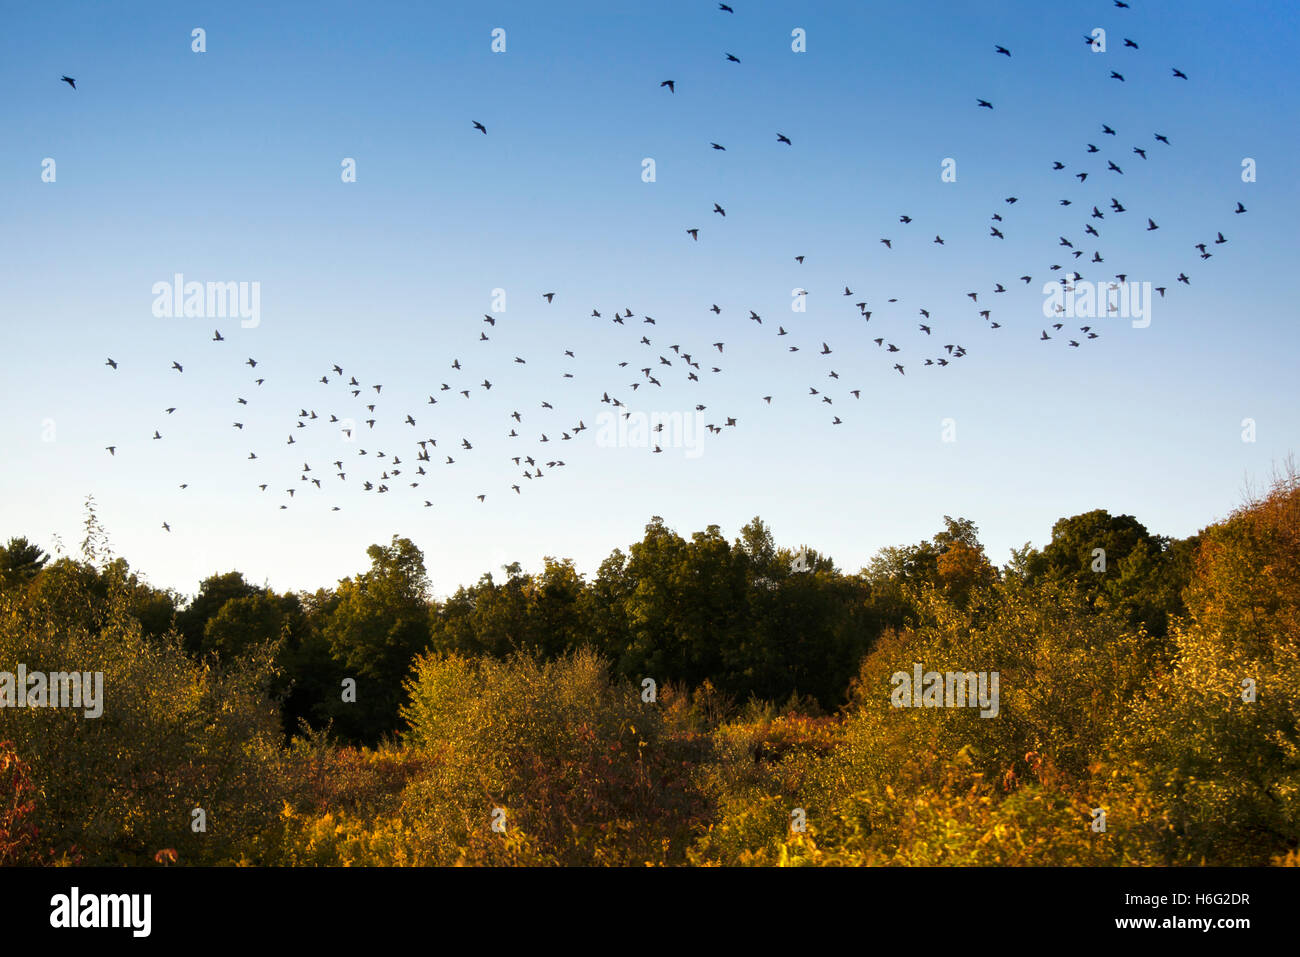 Flock of birds flying across blue sky - Stock Image